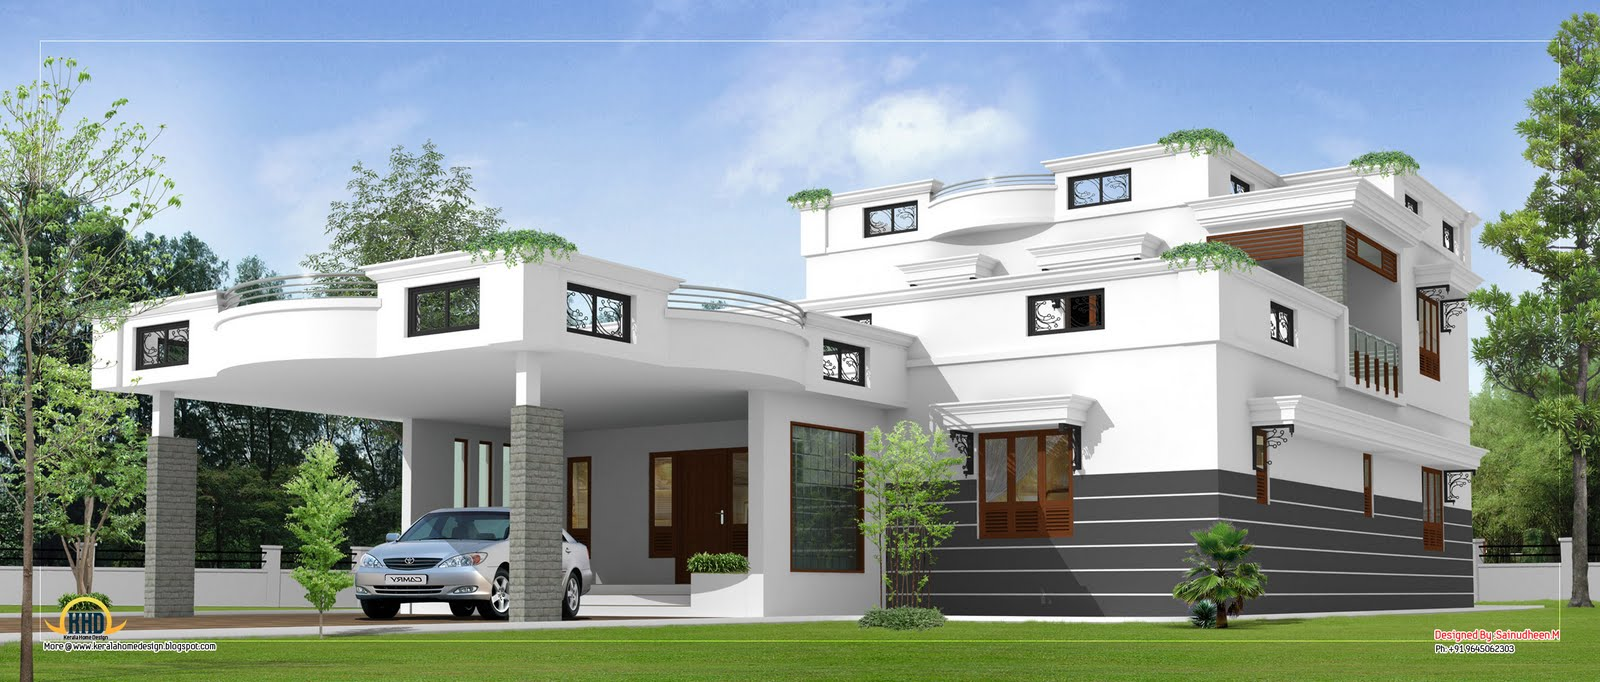 Contemporary home design 3360 sq ft indian home decor Indian modern house